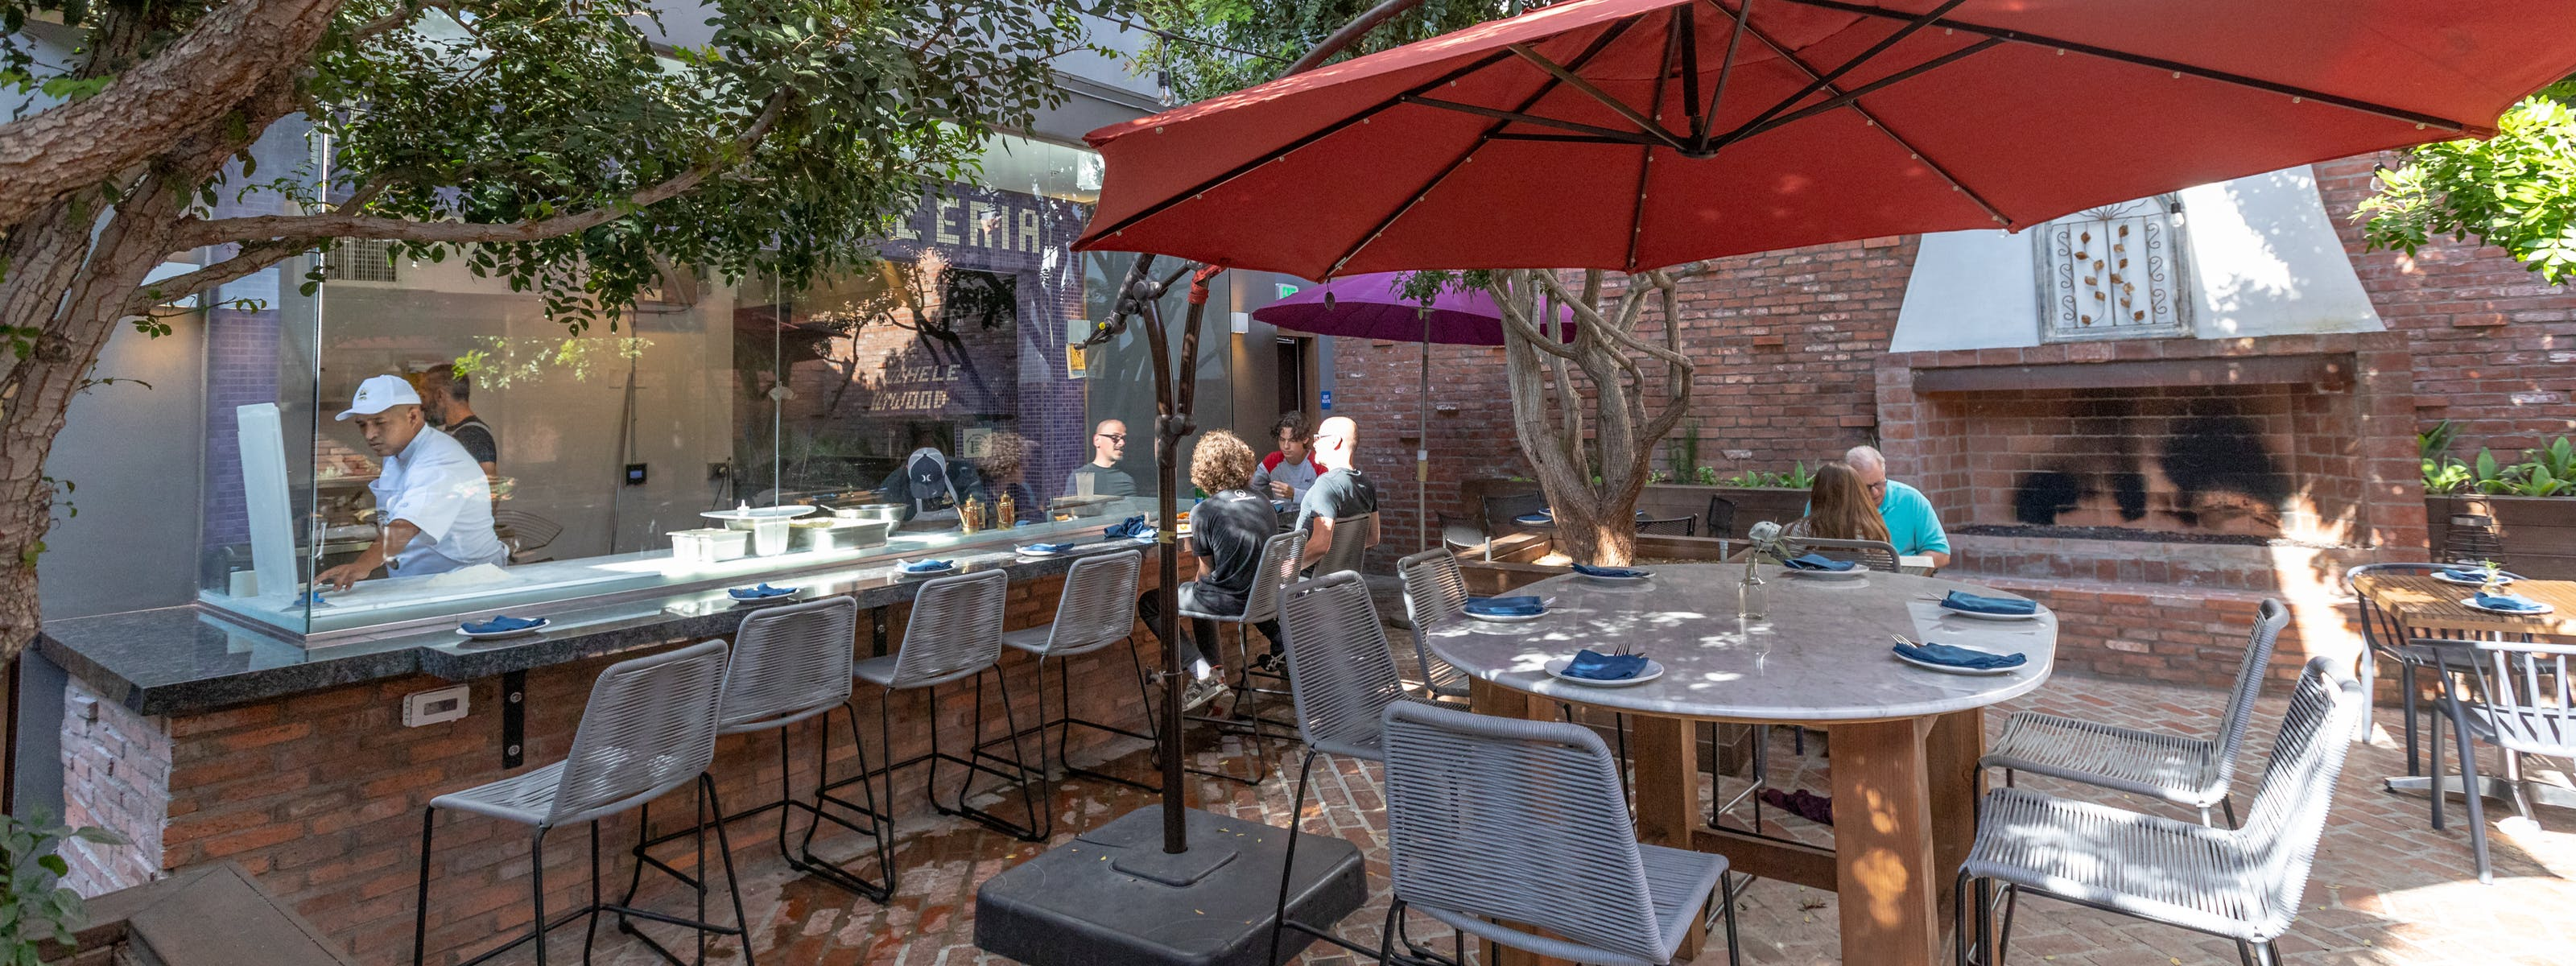 Where To Drink Outside In Hollywood - Hollywood - Los Angeles - The Infatuation